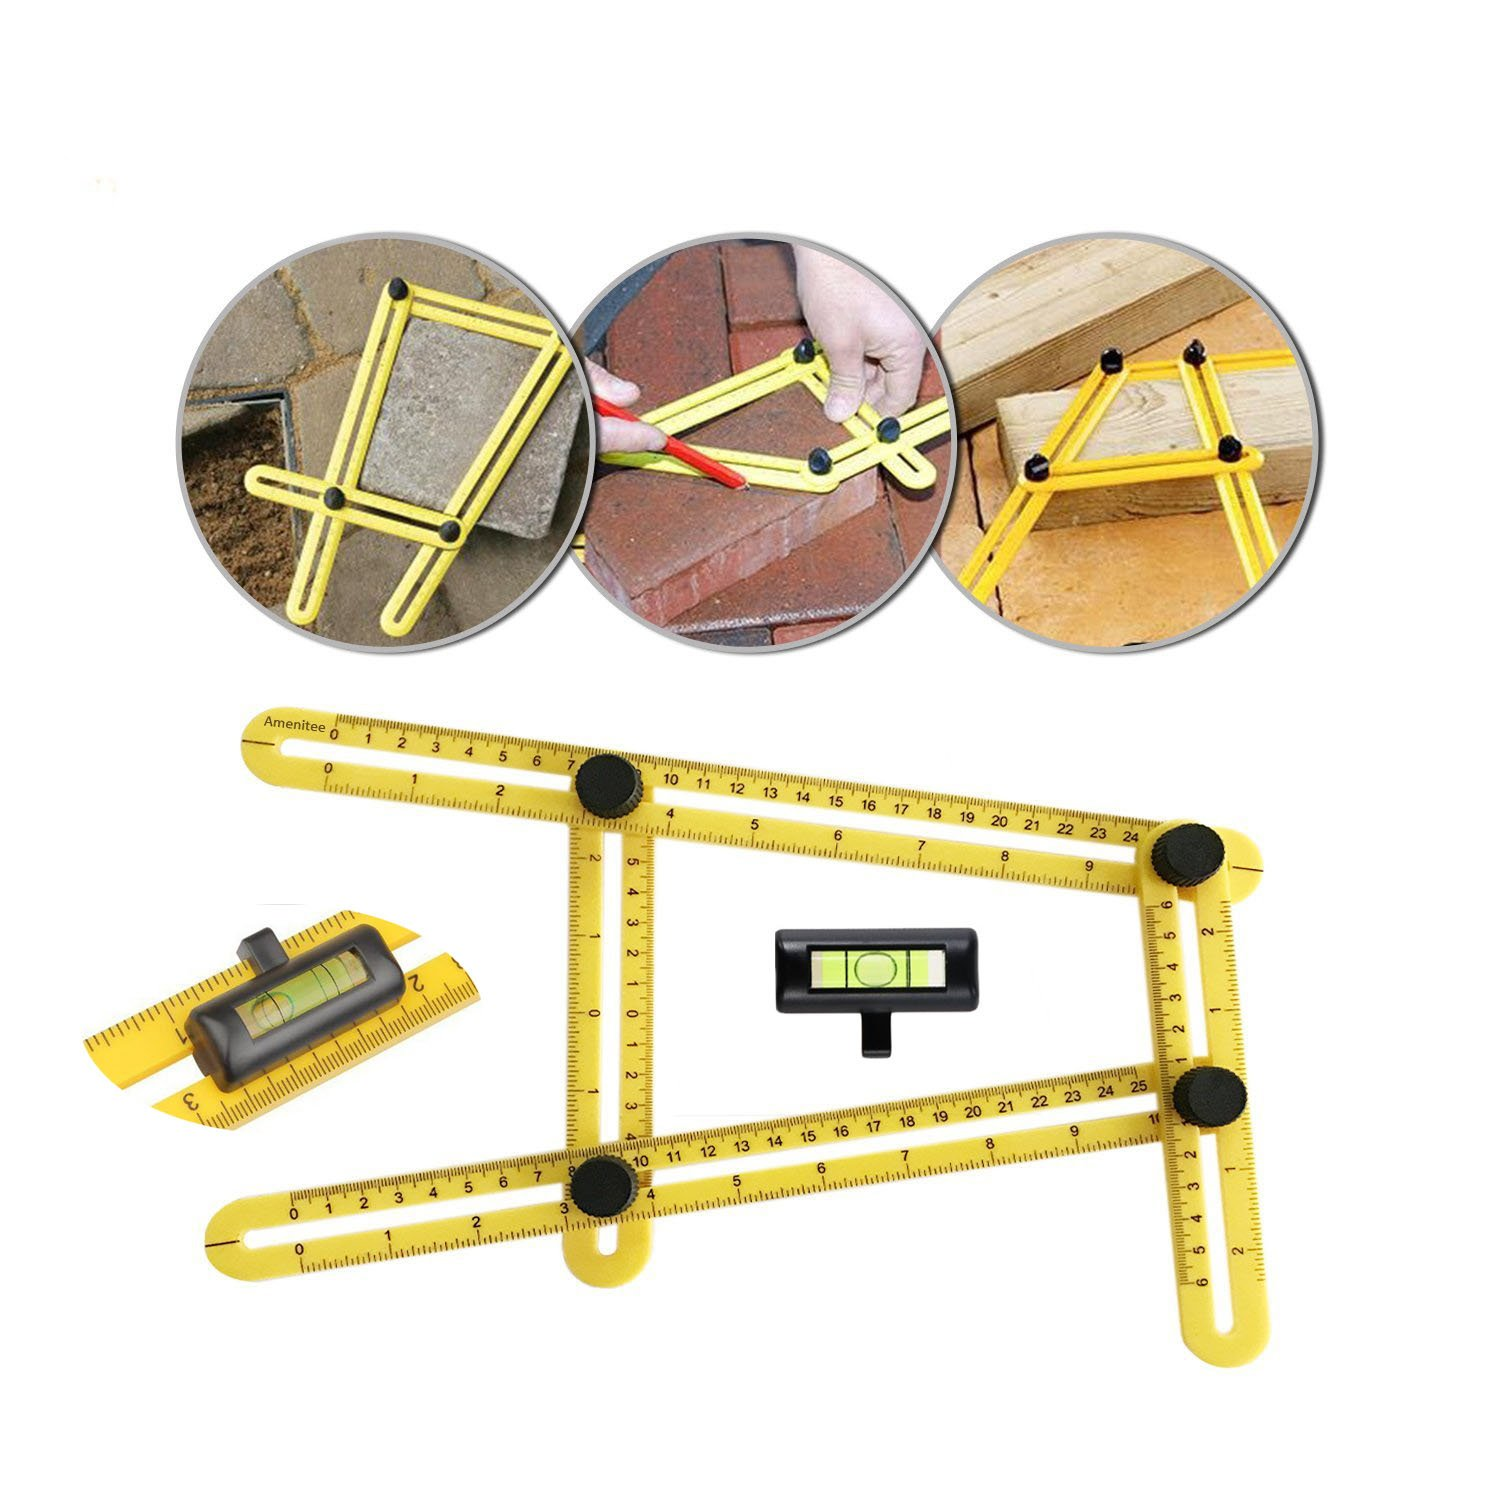 Multi Angle Measuring Ruler, Precise Angle Ruler Template Tool with FREE Protective Pouch, With Unique Line Level-Embedded ABS Bolts and Nuts-Ultimate Template Tool-Perfect Gifts